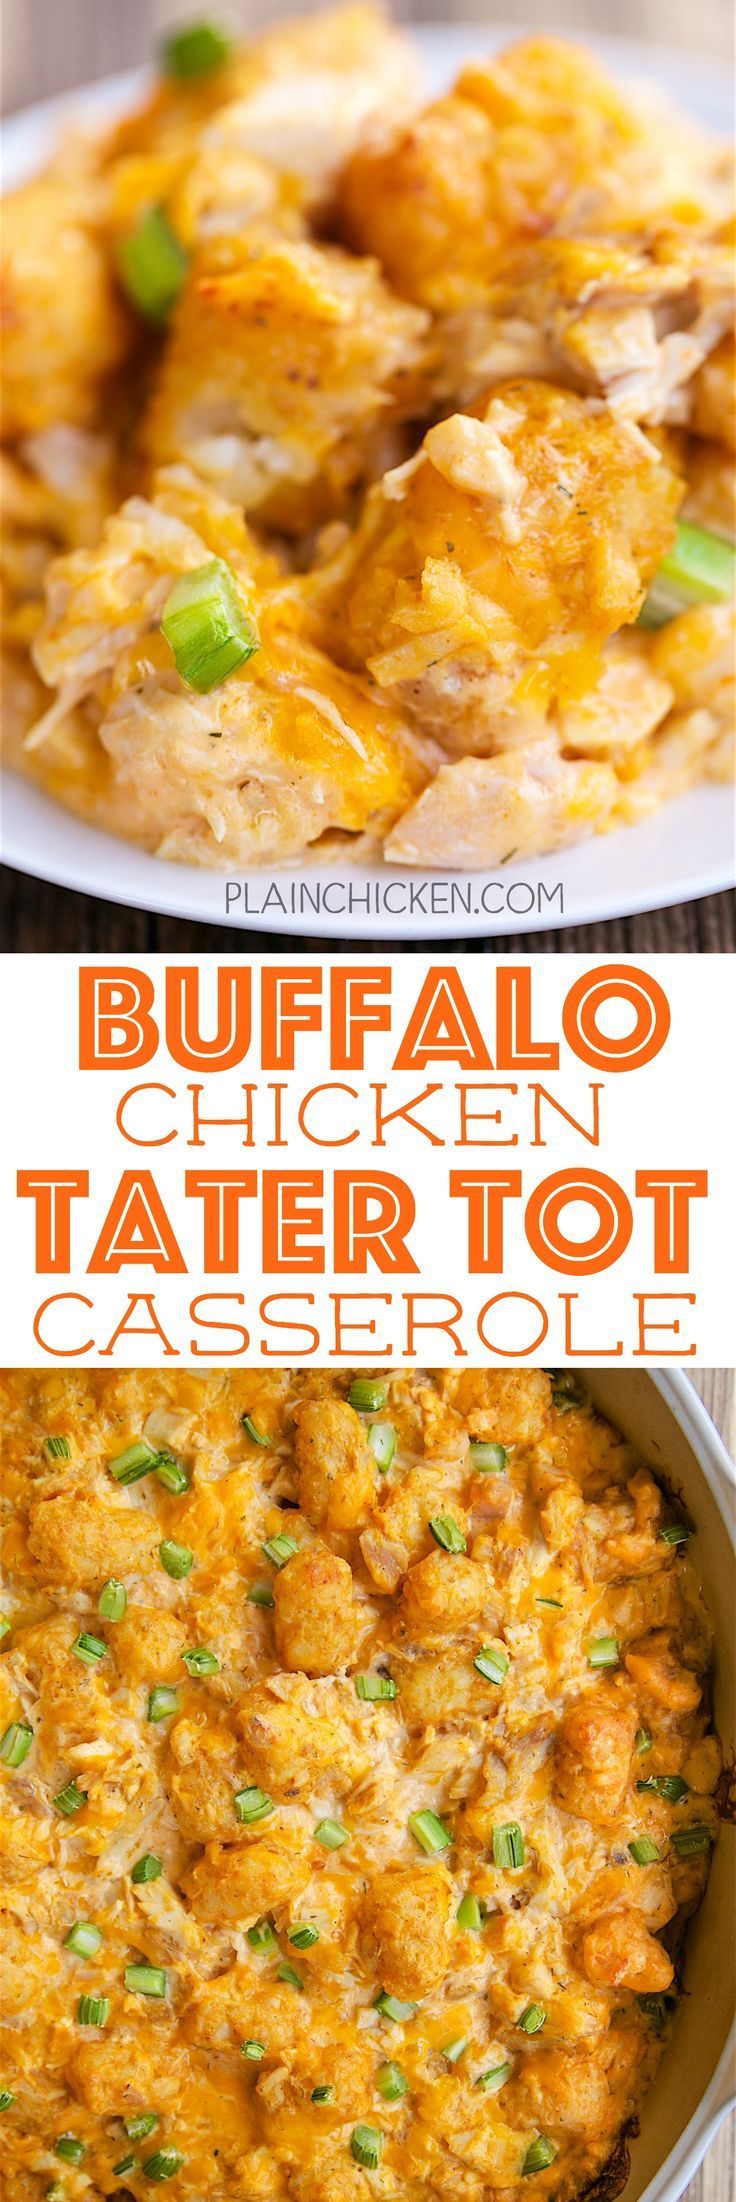 Buffalo Chicken Tater Tot Casserole - SO good! Great casserole for a potluck or watching football!! Everyone LOVES this recipe! Chicken, sour cream, cream of chicken soup, buffalo wing sauce, cheddar cheese, tater tots and celery. Can make ahead and freeze for later.